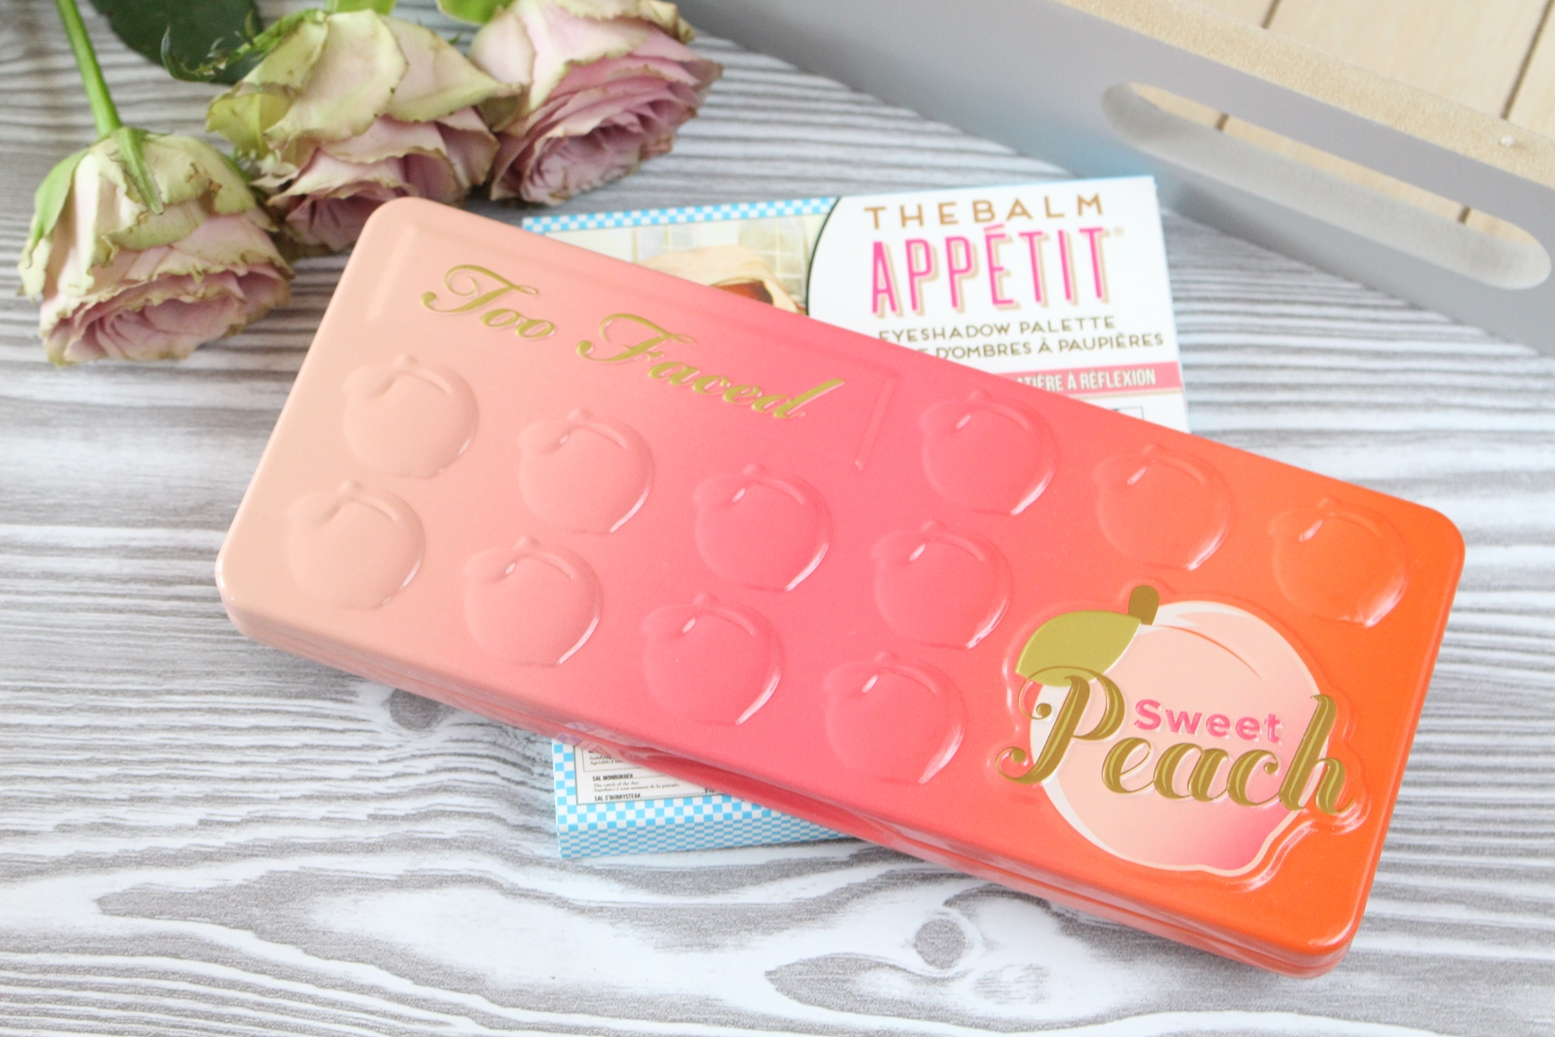 too-faced-sweet-peach-the-balm-appetit